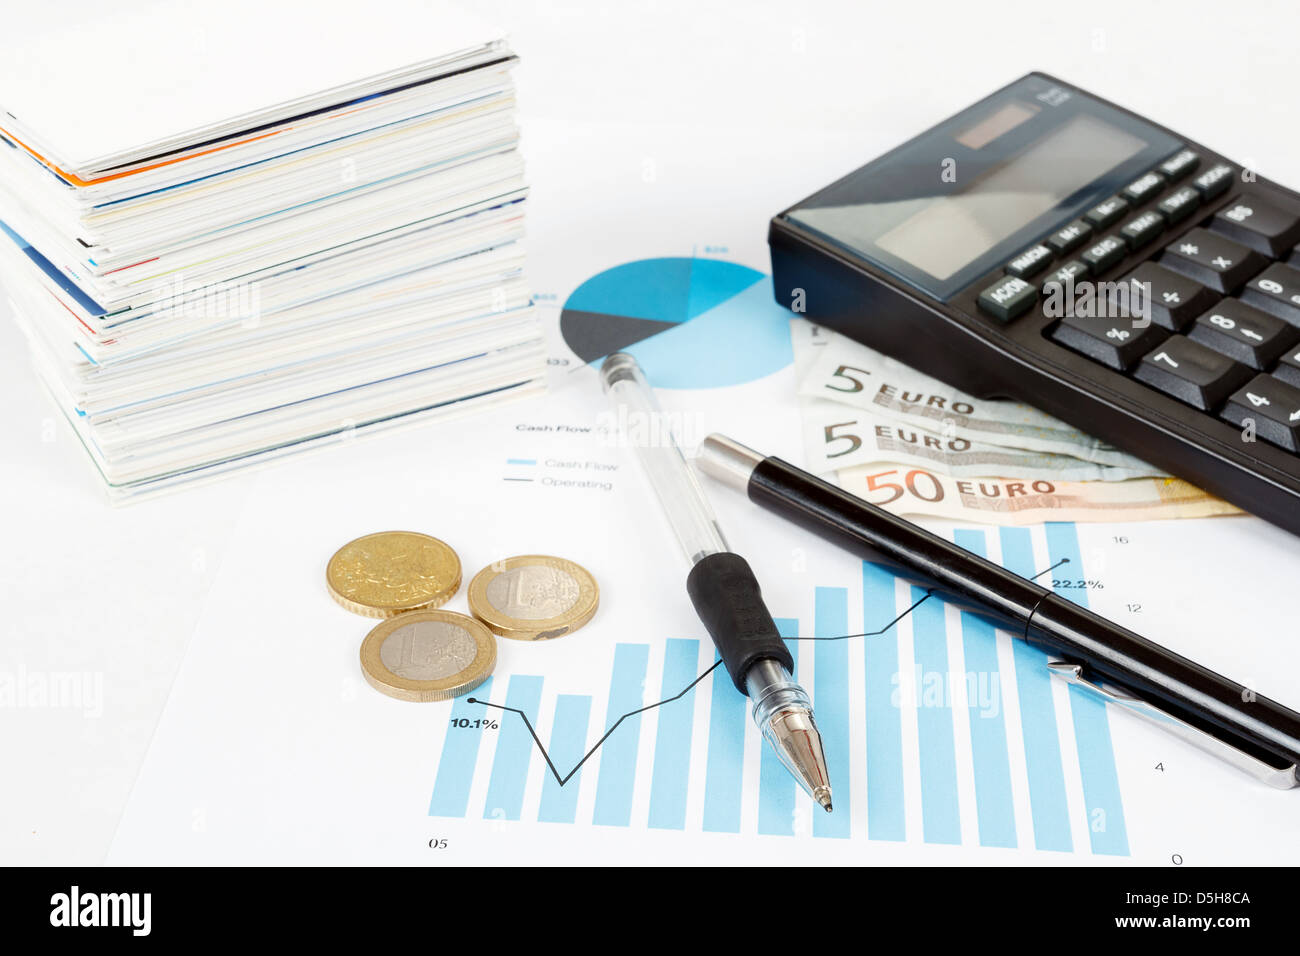 calculator, charts, pen, business cards, money, workplace businessman, business collage - Stock Image